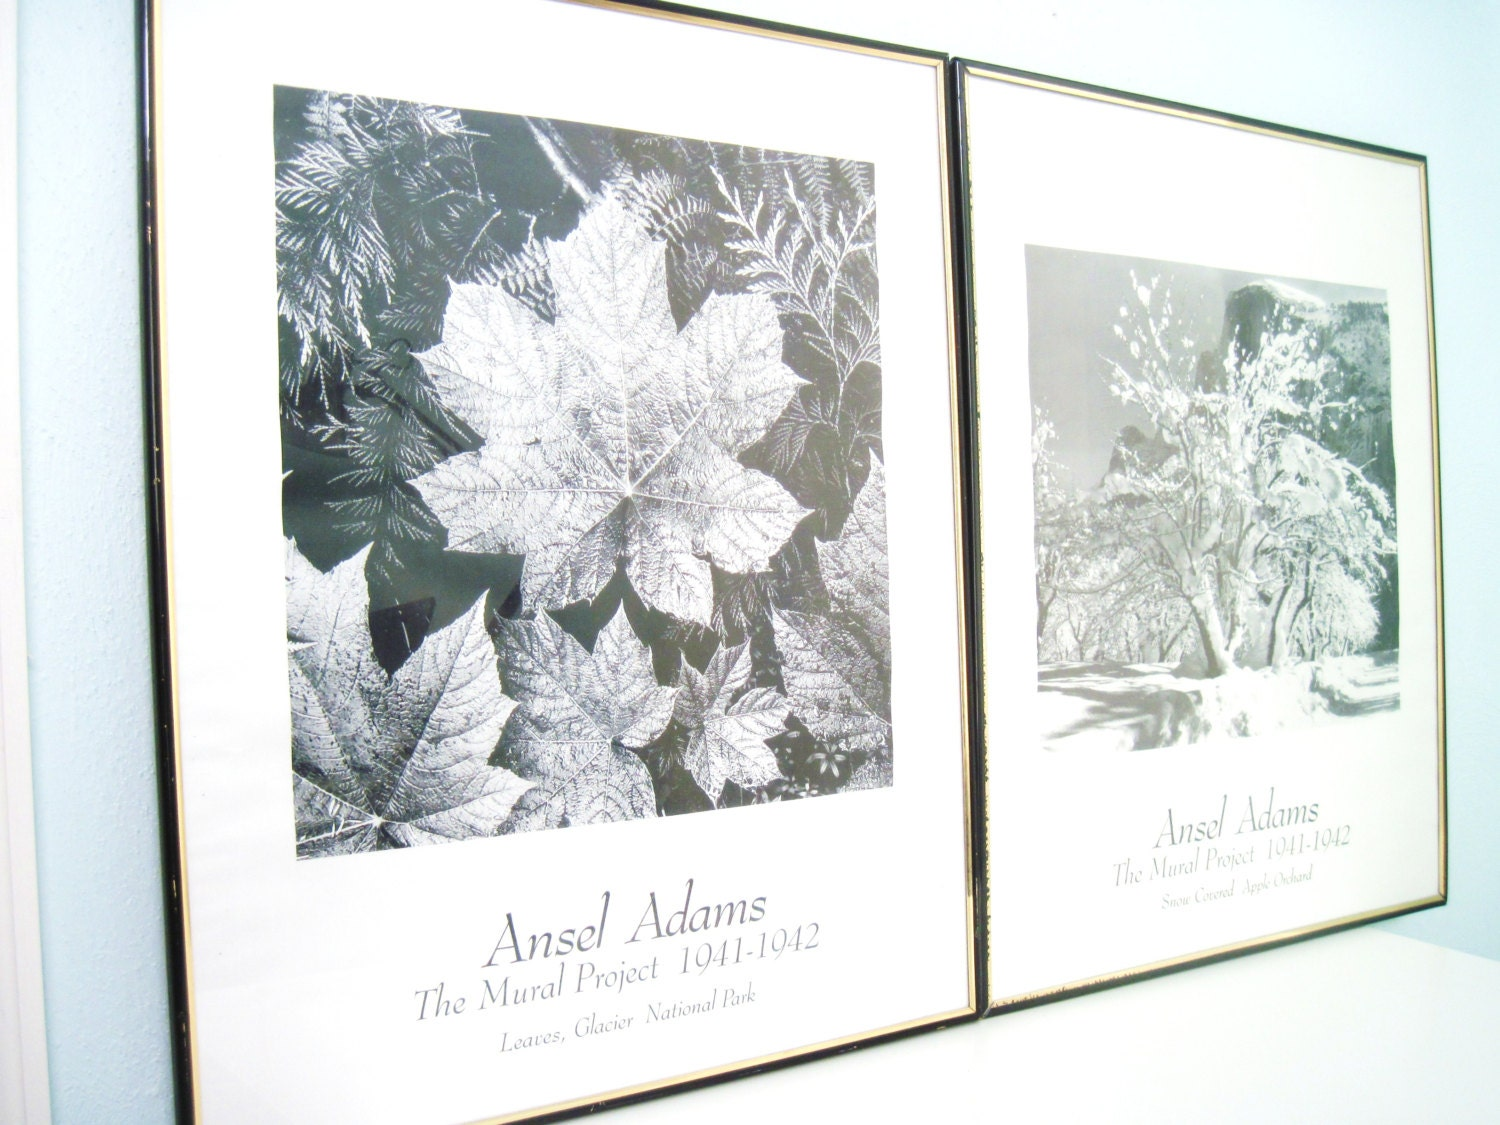 Vintage ansel adams framed photography by planetfriendlygoods for Ansel adams mural project 1941 to 1942